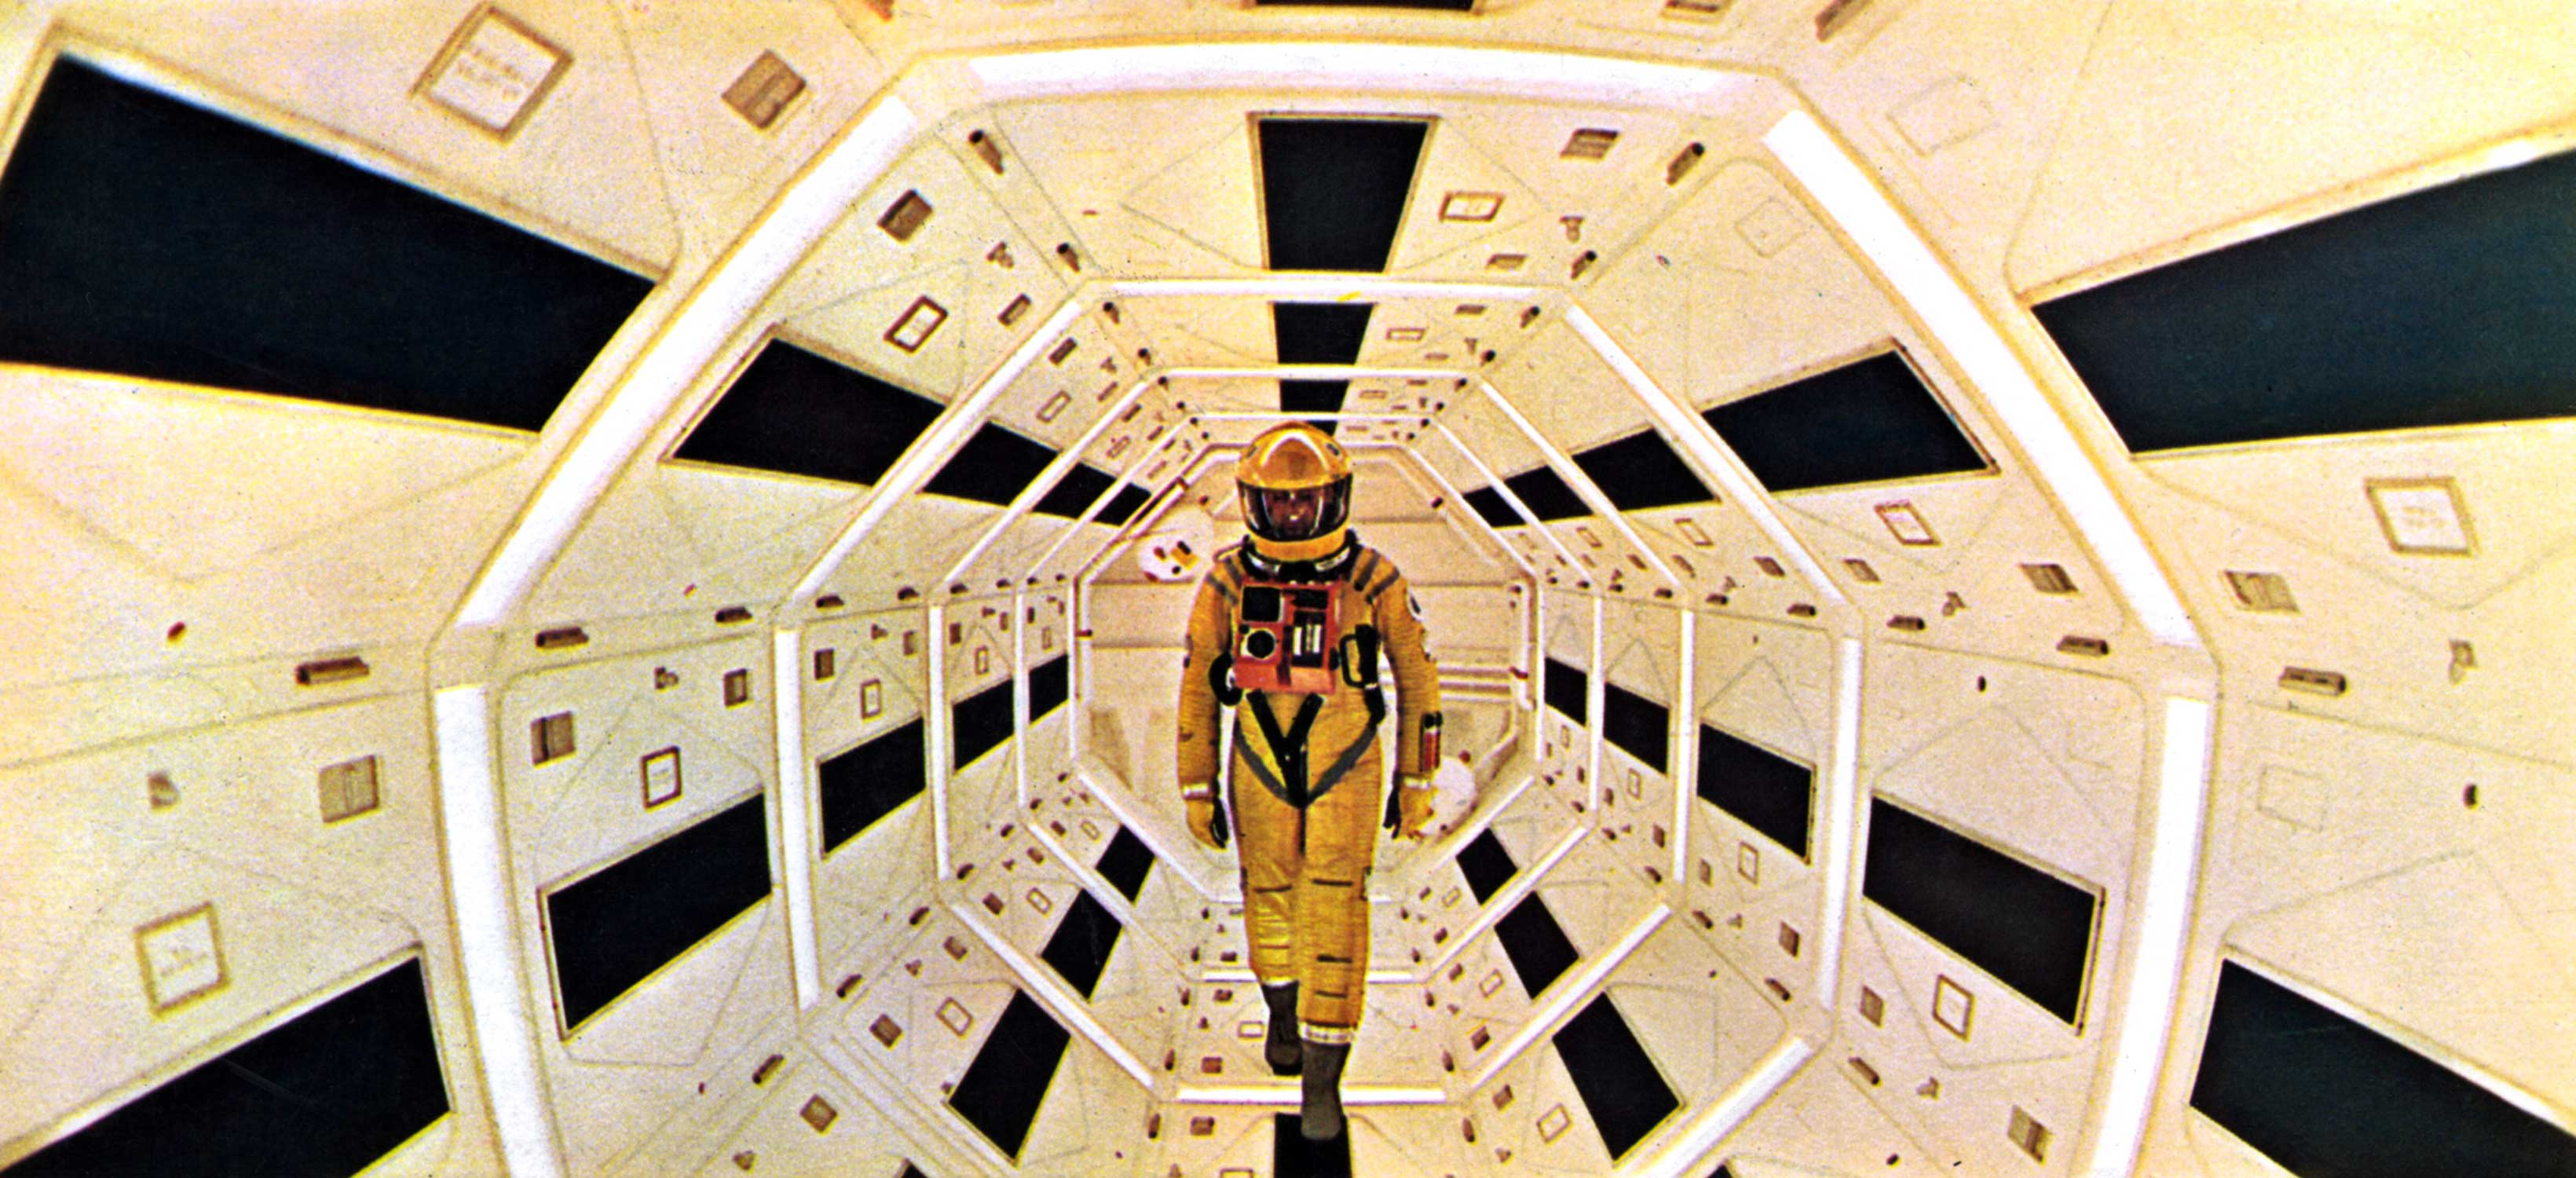 Keir Dullea in a Scene from 2001 A Space Odyssey